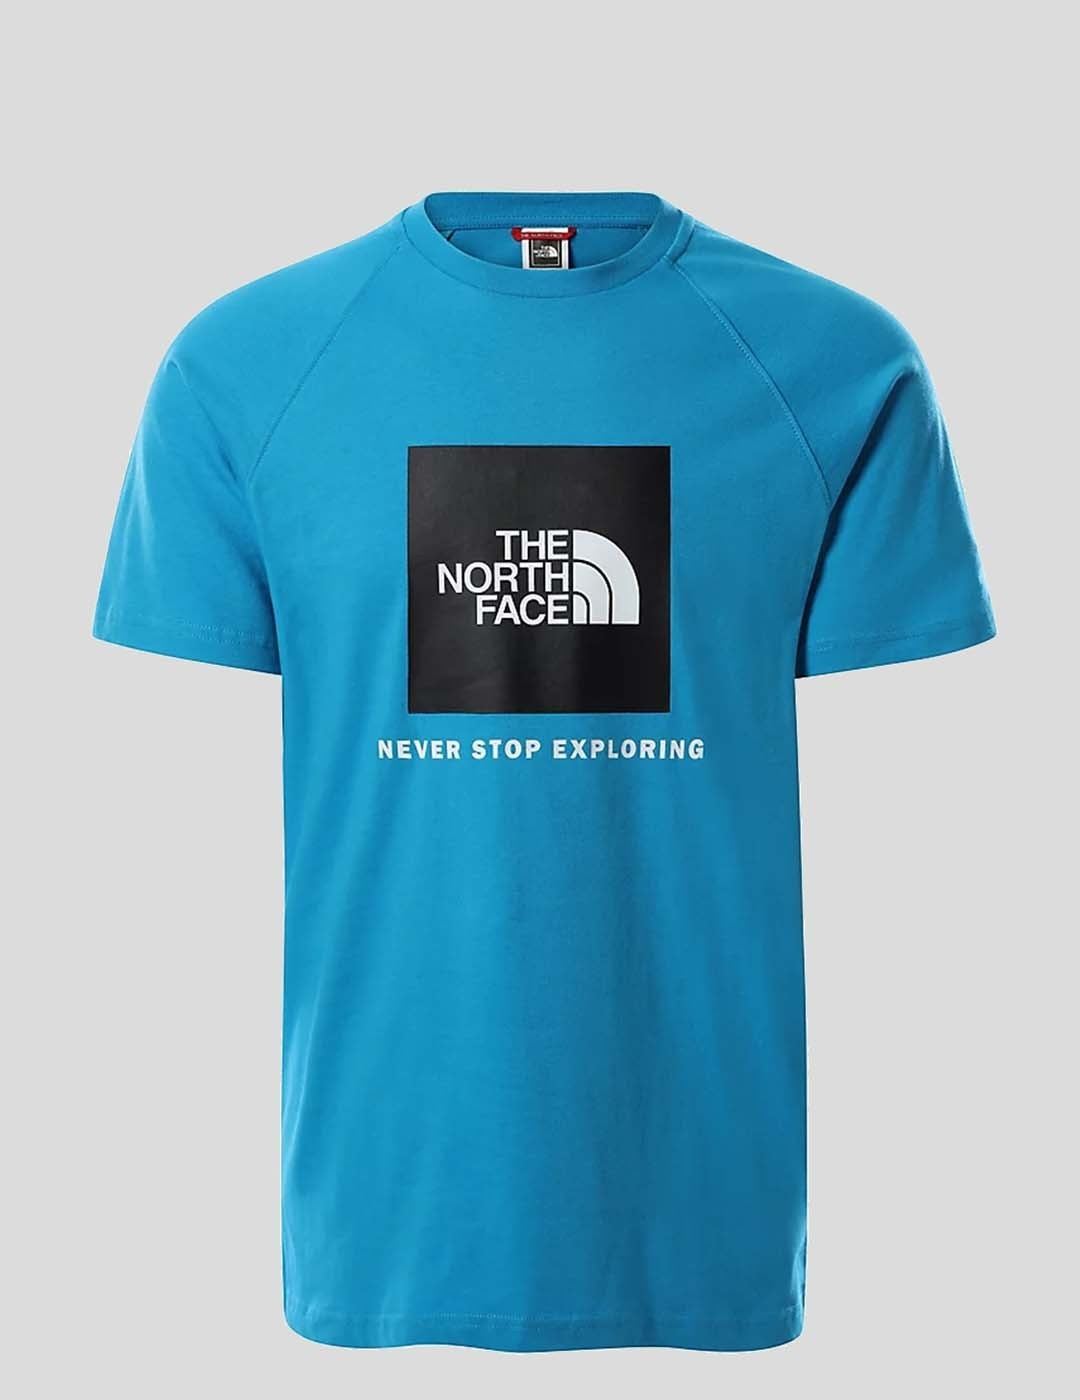 CAMISETA THE NORTH FACE S/S RAG RED BOX TEE MERIDIAN BLUE